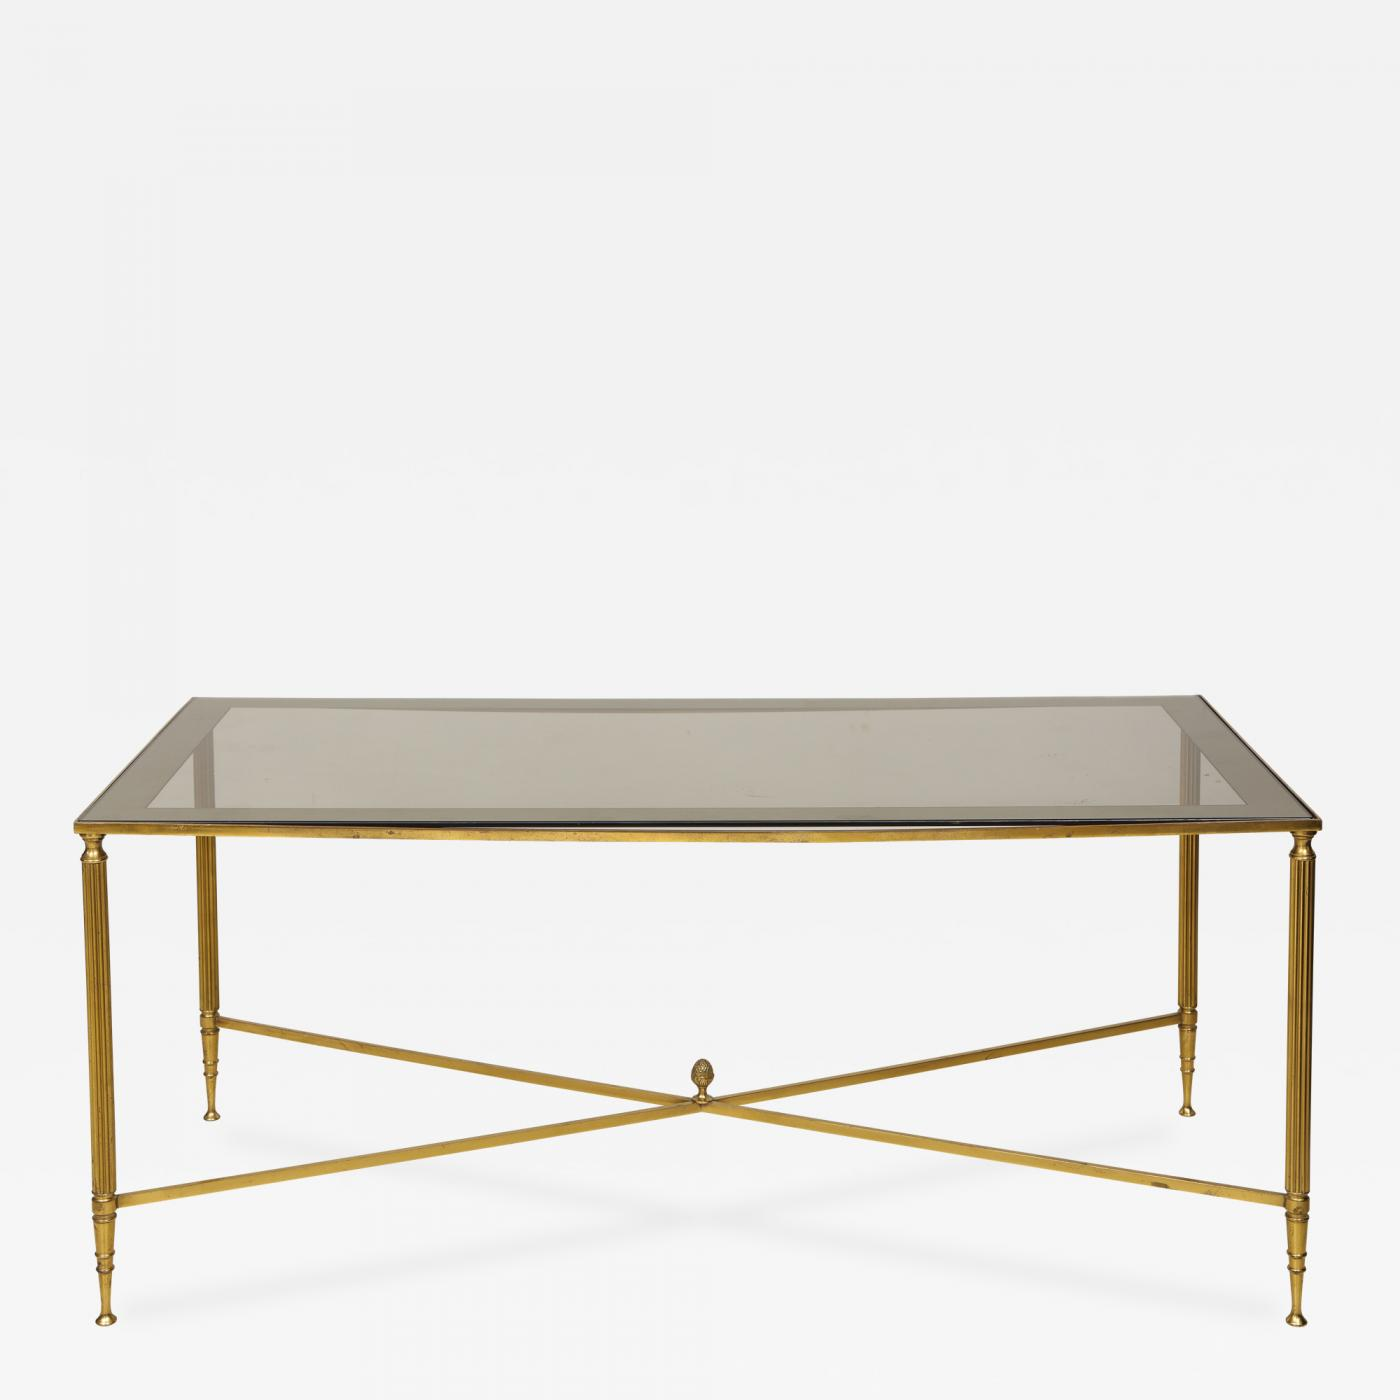 brass cocktail table smoked glass top on stretchers base